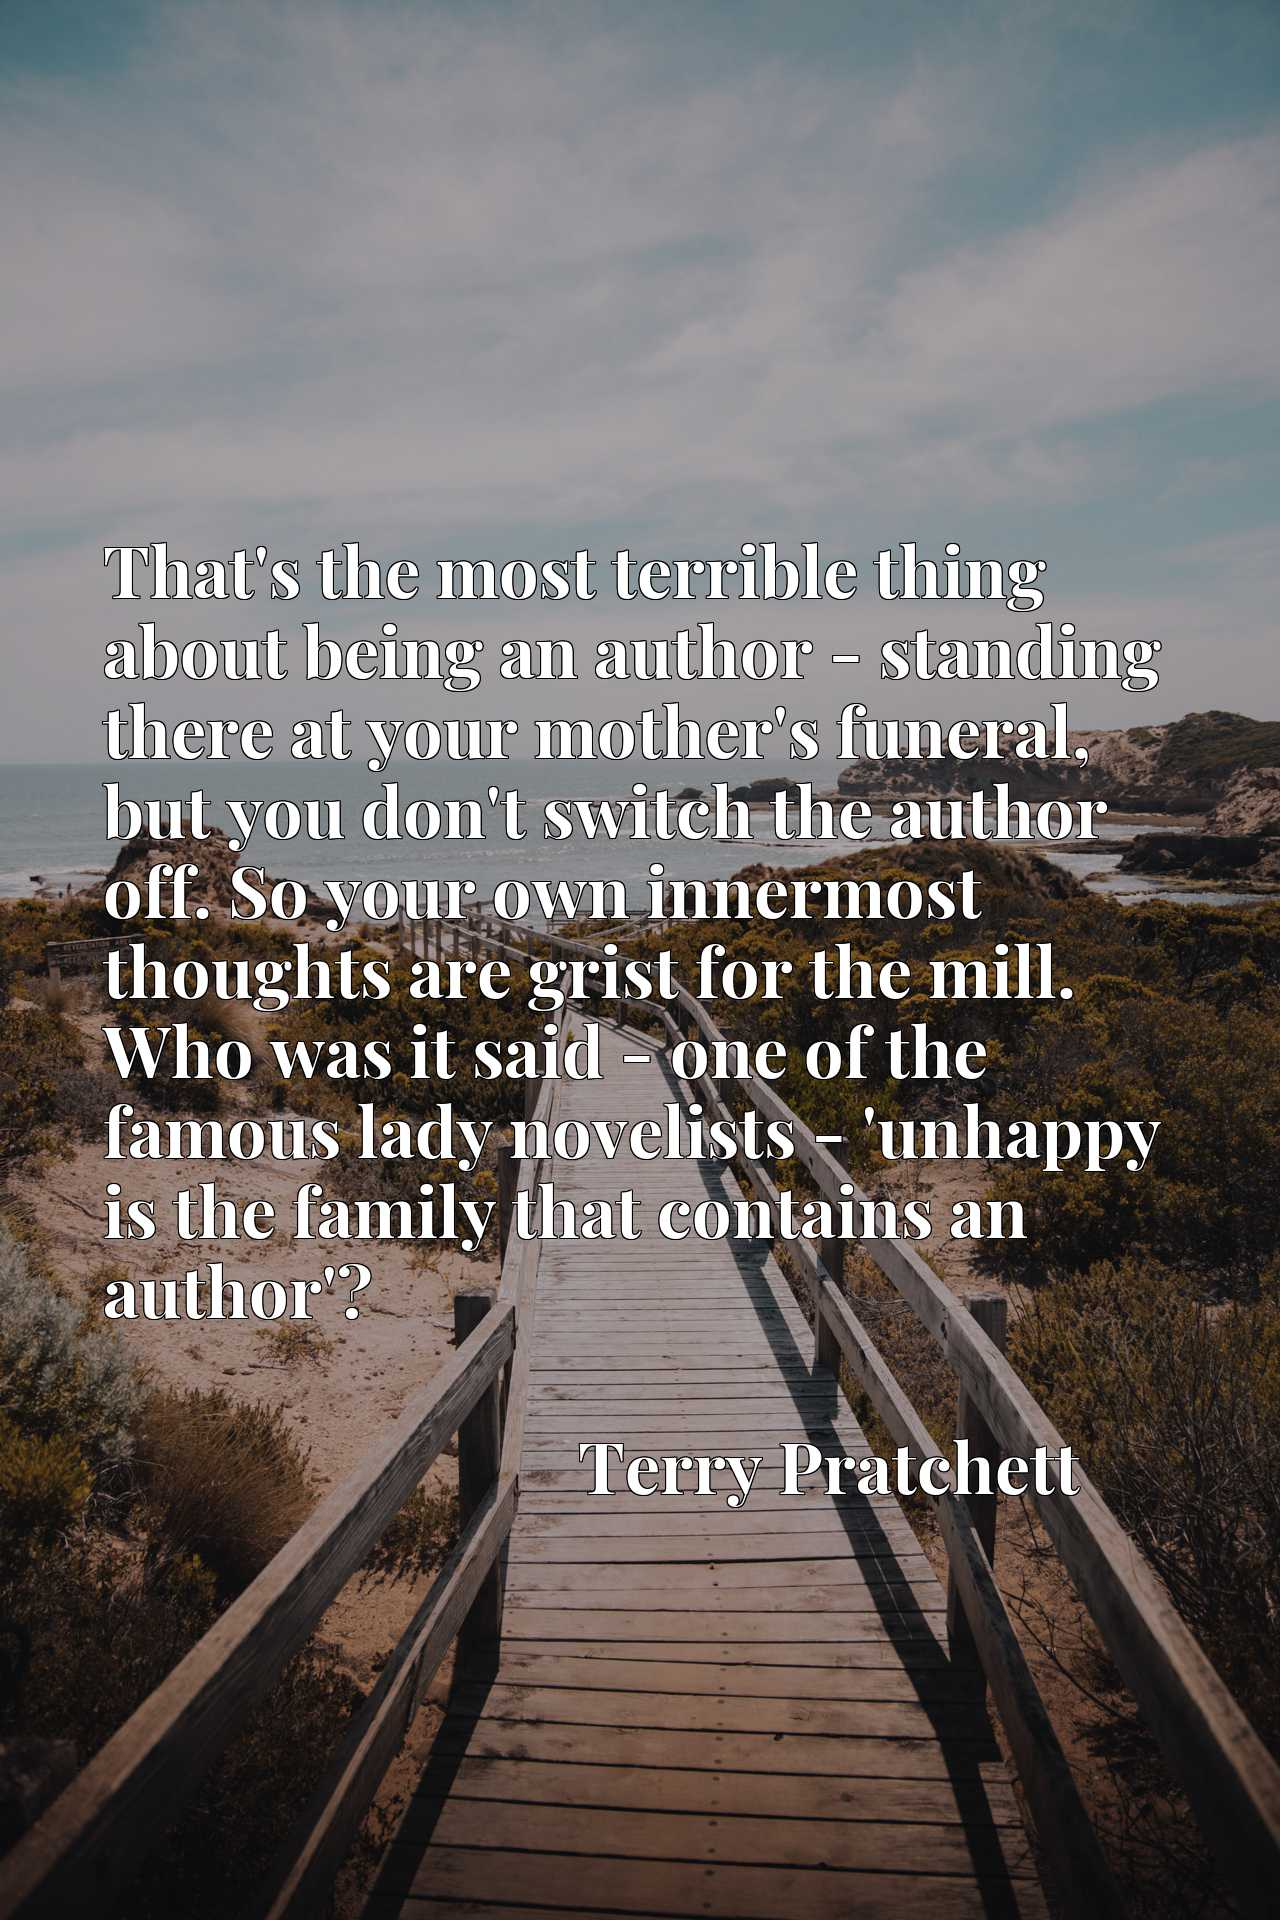 That's the most terrible thing about being an author - standing there at your mother's funeral, but you don't switch the author off. So your own innermost thoughts are grist for the mill. Who was it said - one of the famous lady novelists - 'unhappy is the family that contains an author'?